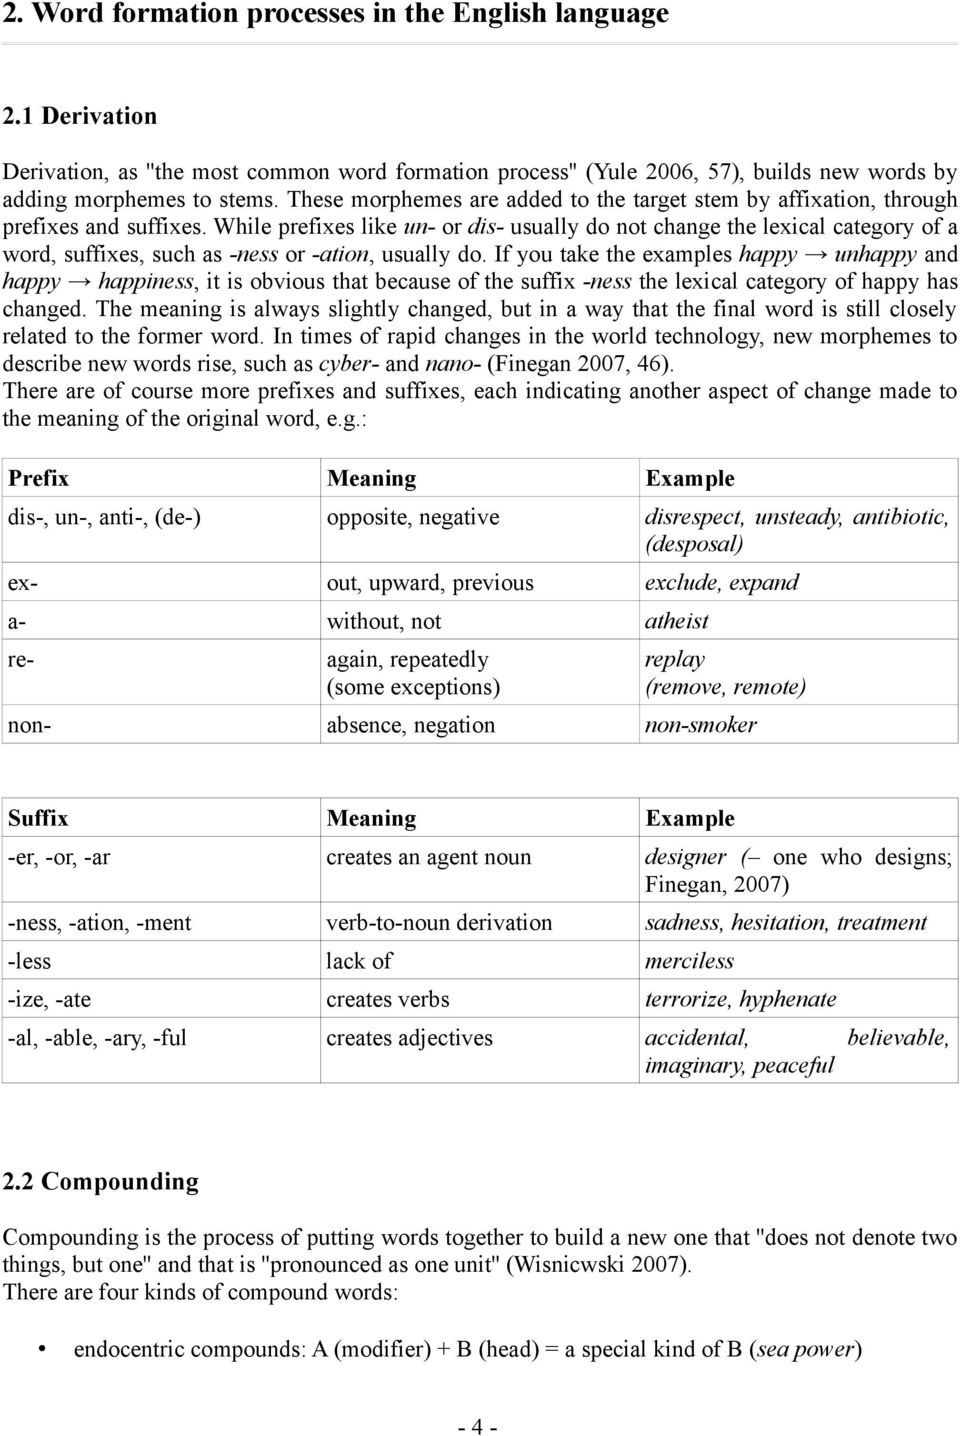 Word Formation Processes: How new Words develop in the